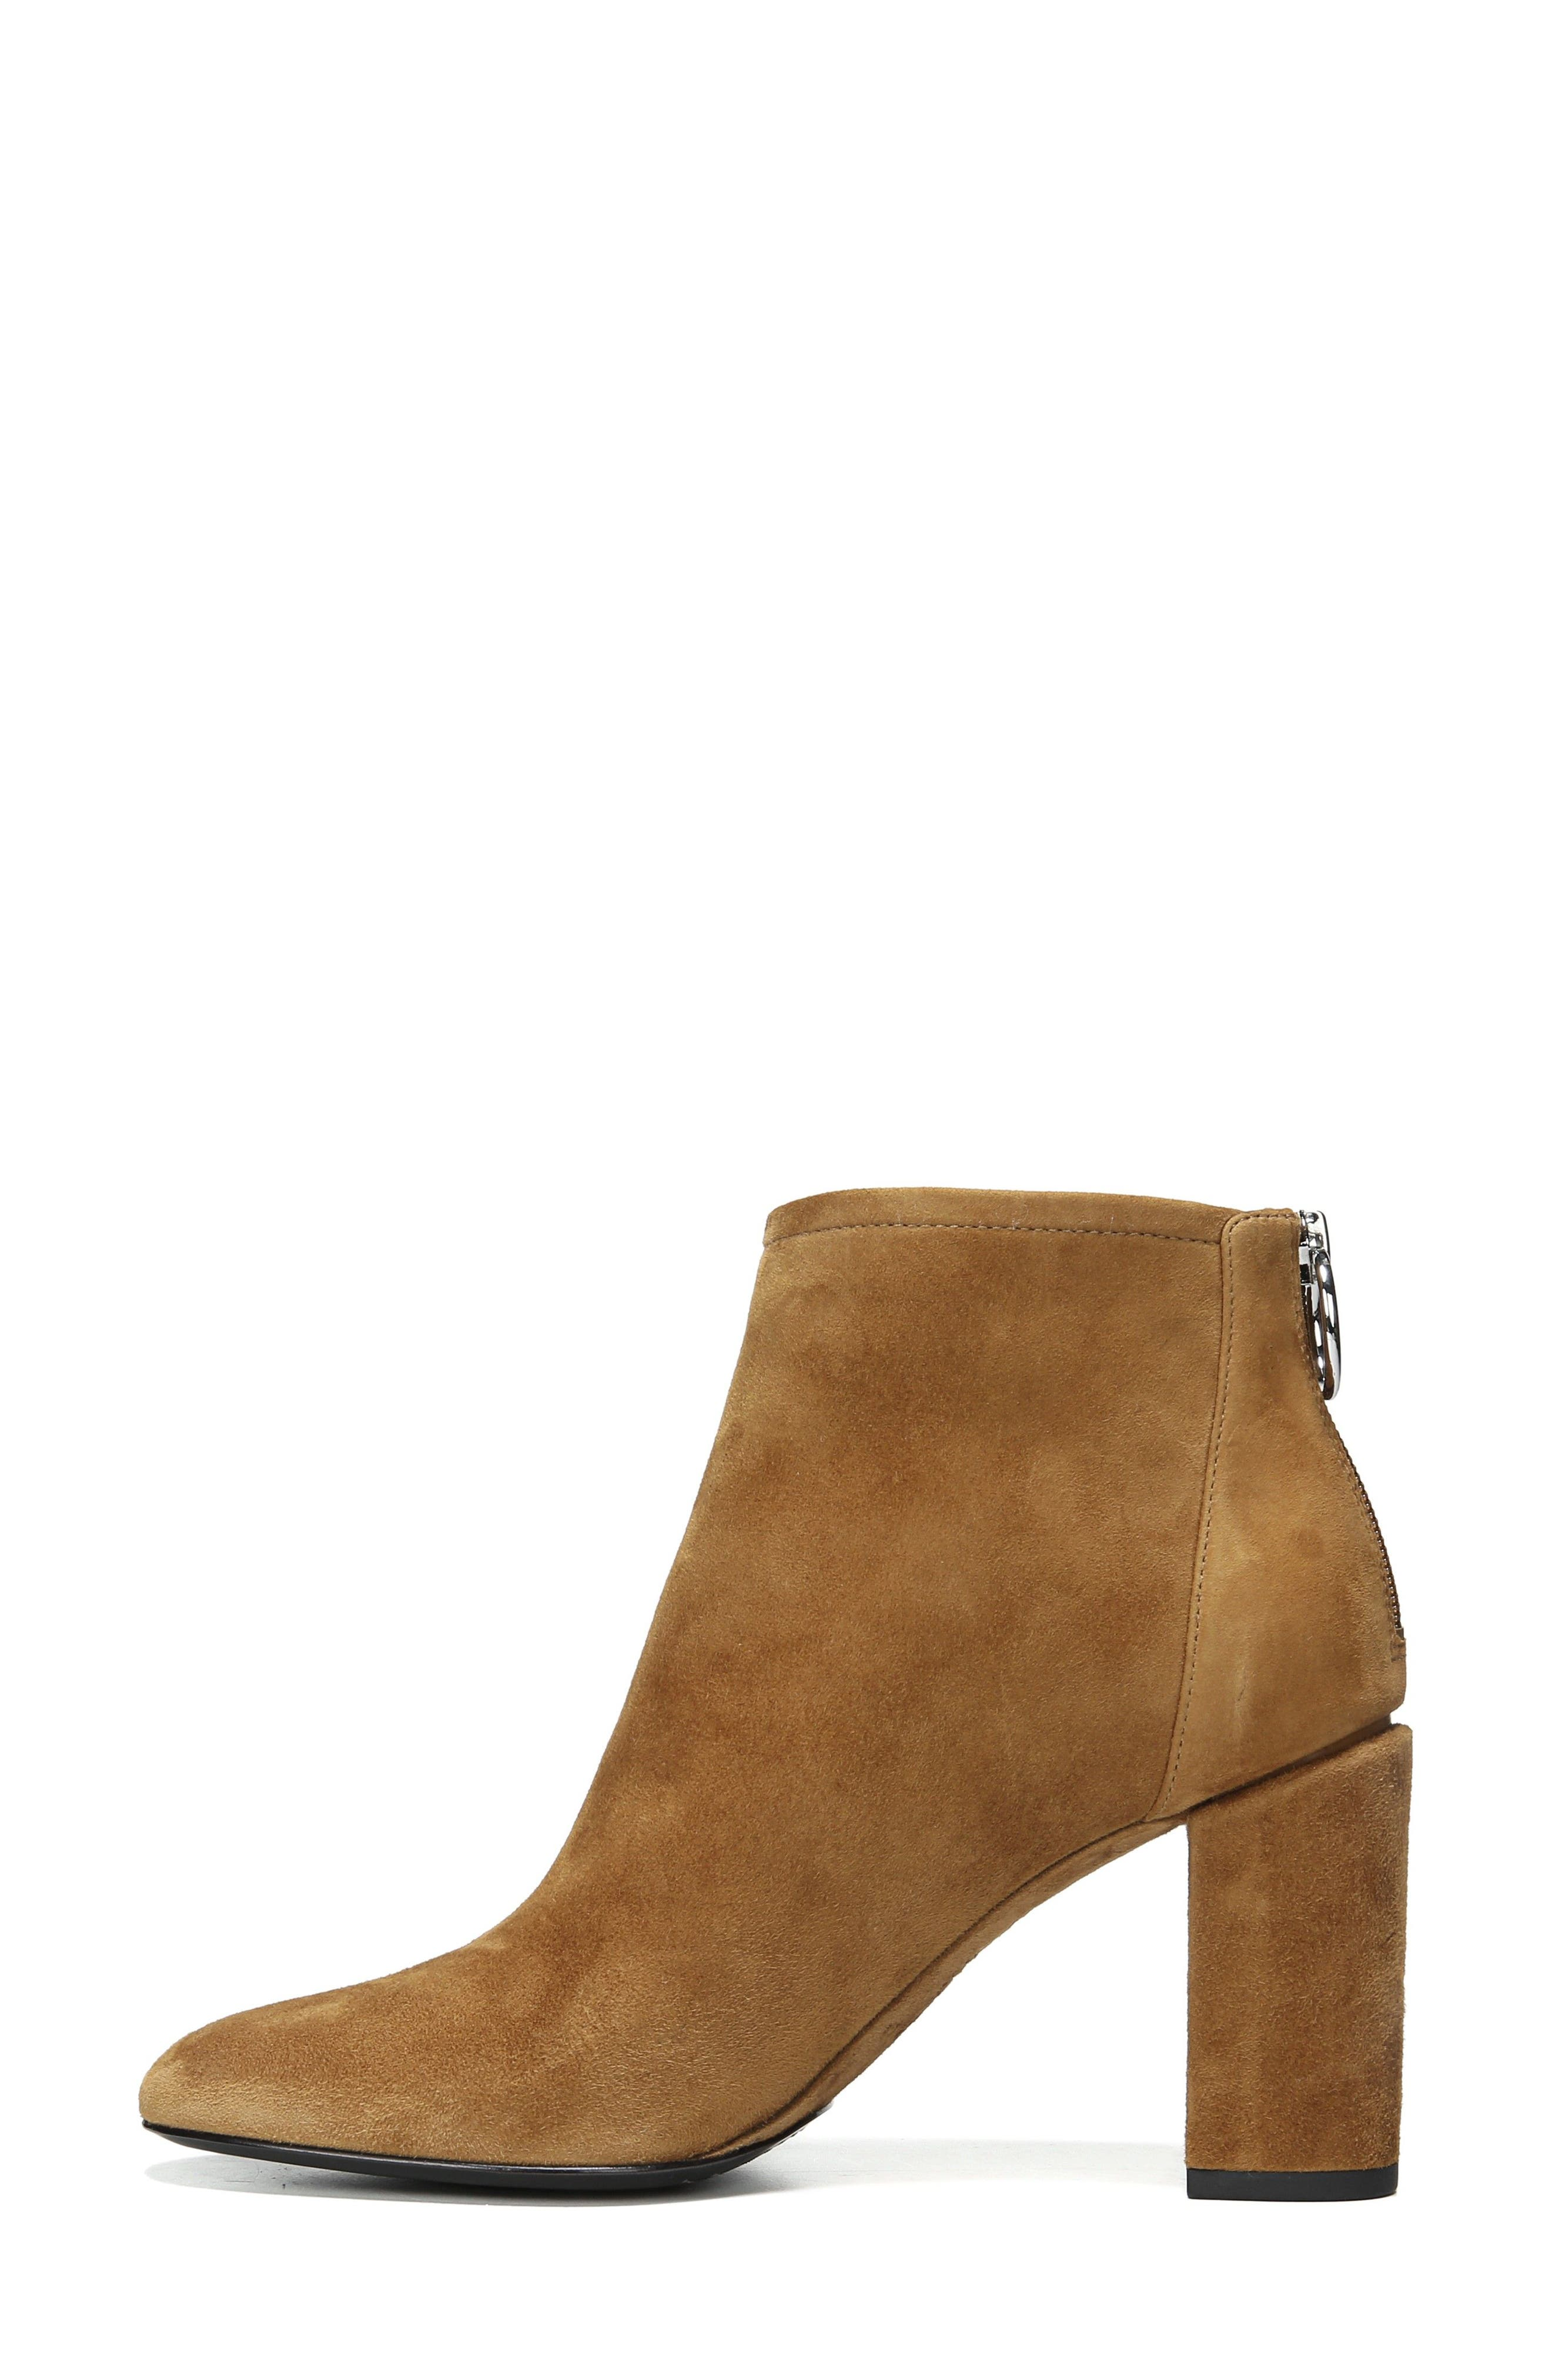 Nadia Bootie,                             Alternate thumbnail 4, color,                             Cuoio Suede